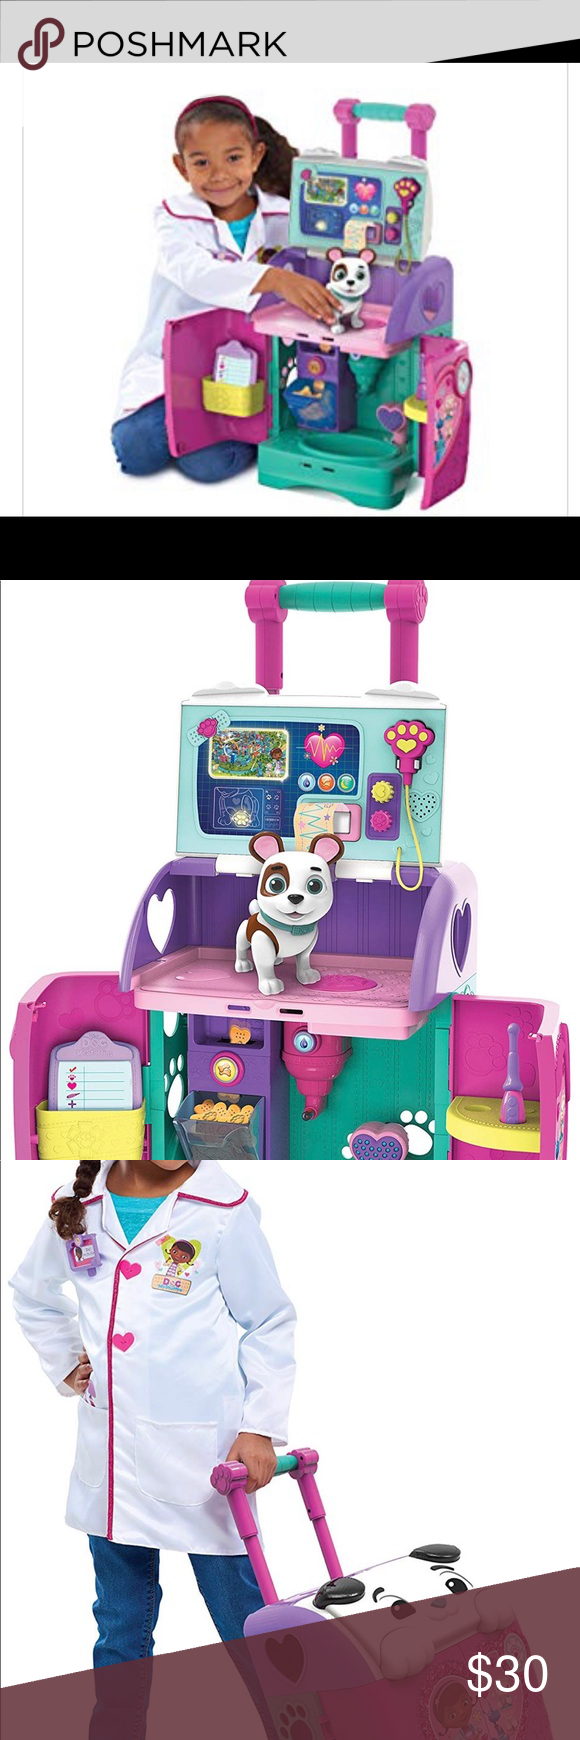 Doc Mcstuffins Pet Rescue Mobile Brand New Doc Mcstuffins Pet Mobile Pet Rescue Mobile Is Equipped With Lights Music Phrases And Play Medical T Animal Rescue